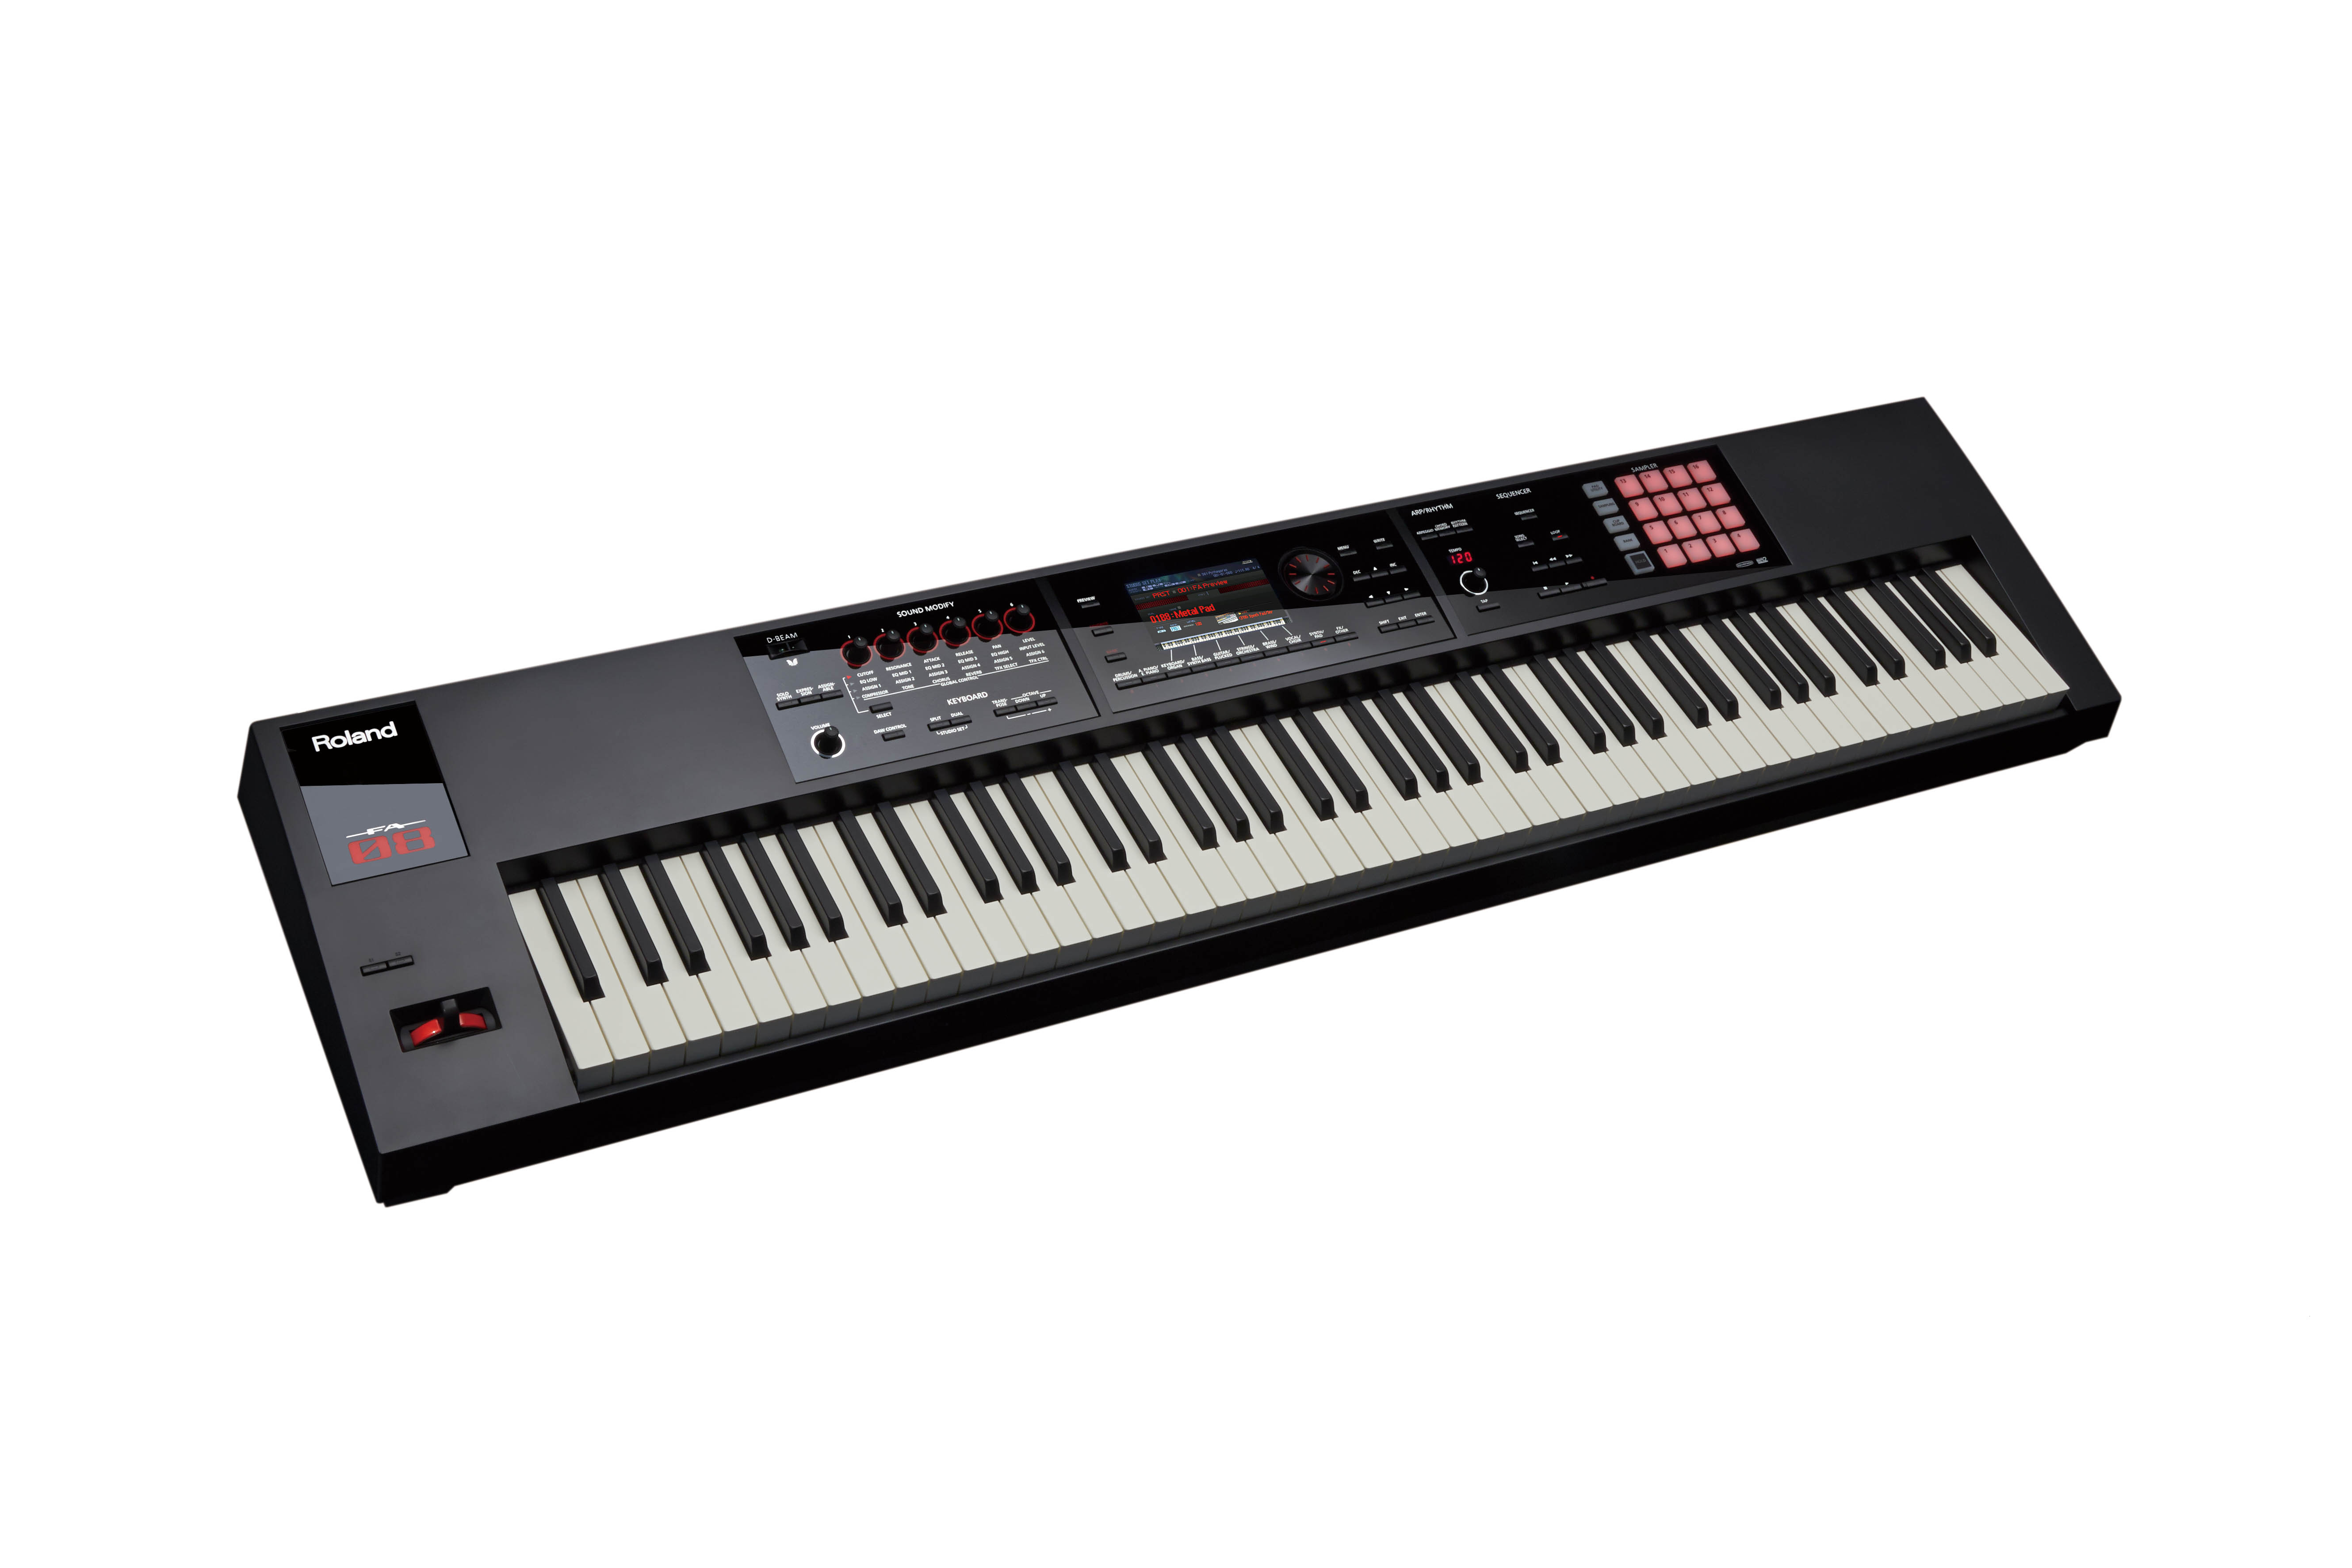 roland fa 08 88 key synthesizer workstation with weighte. Black Bedroom Furniture Sets. Home Design Ideas